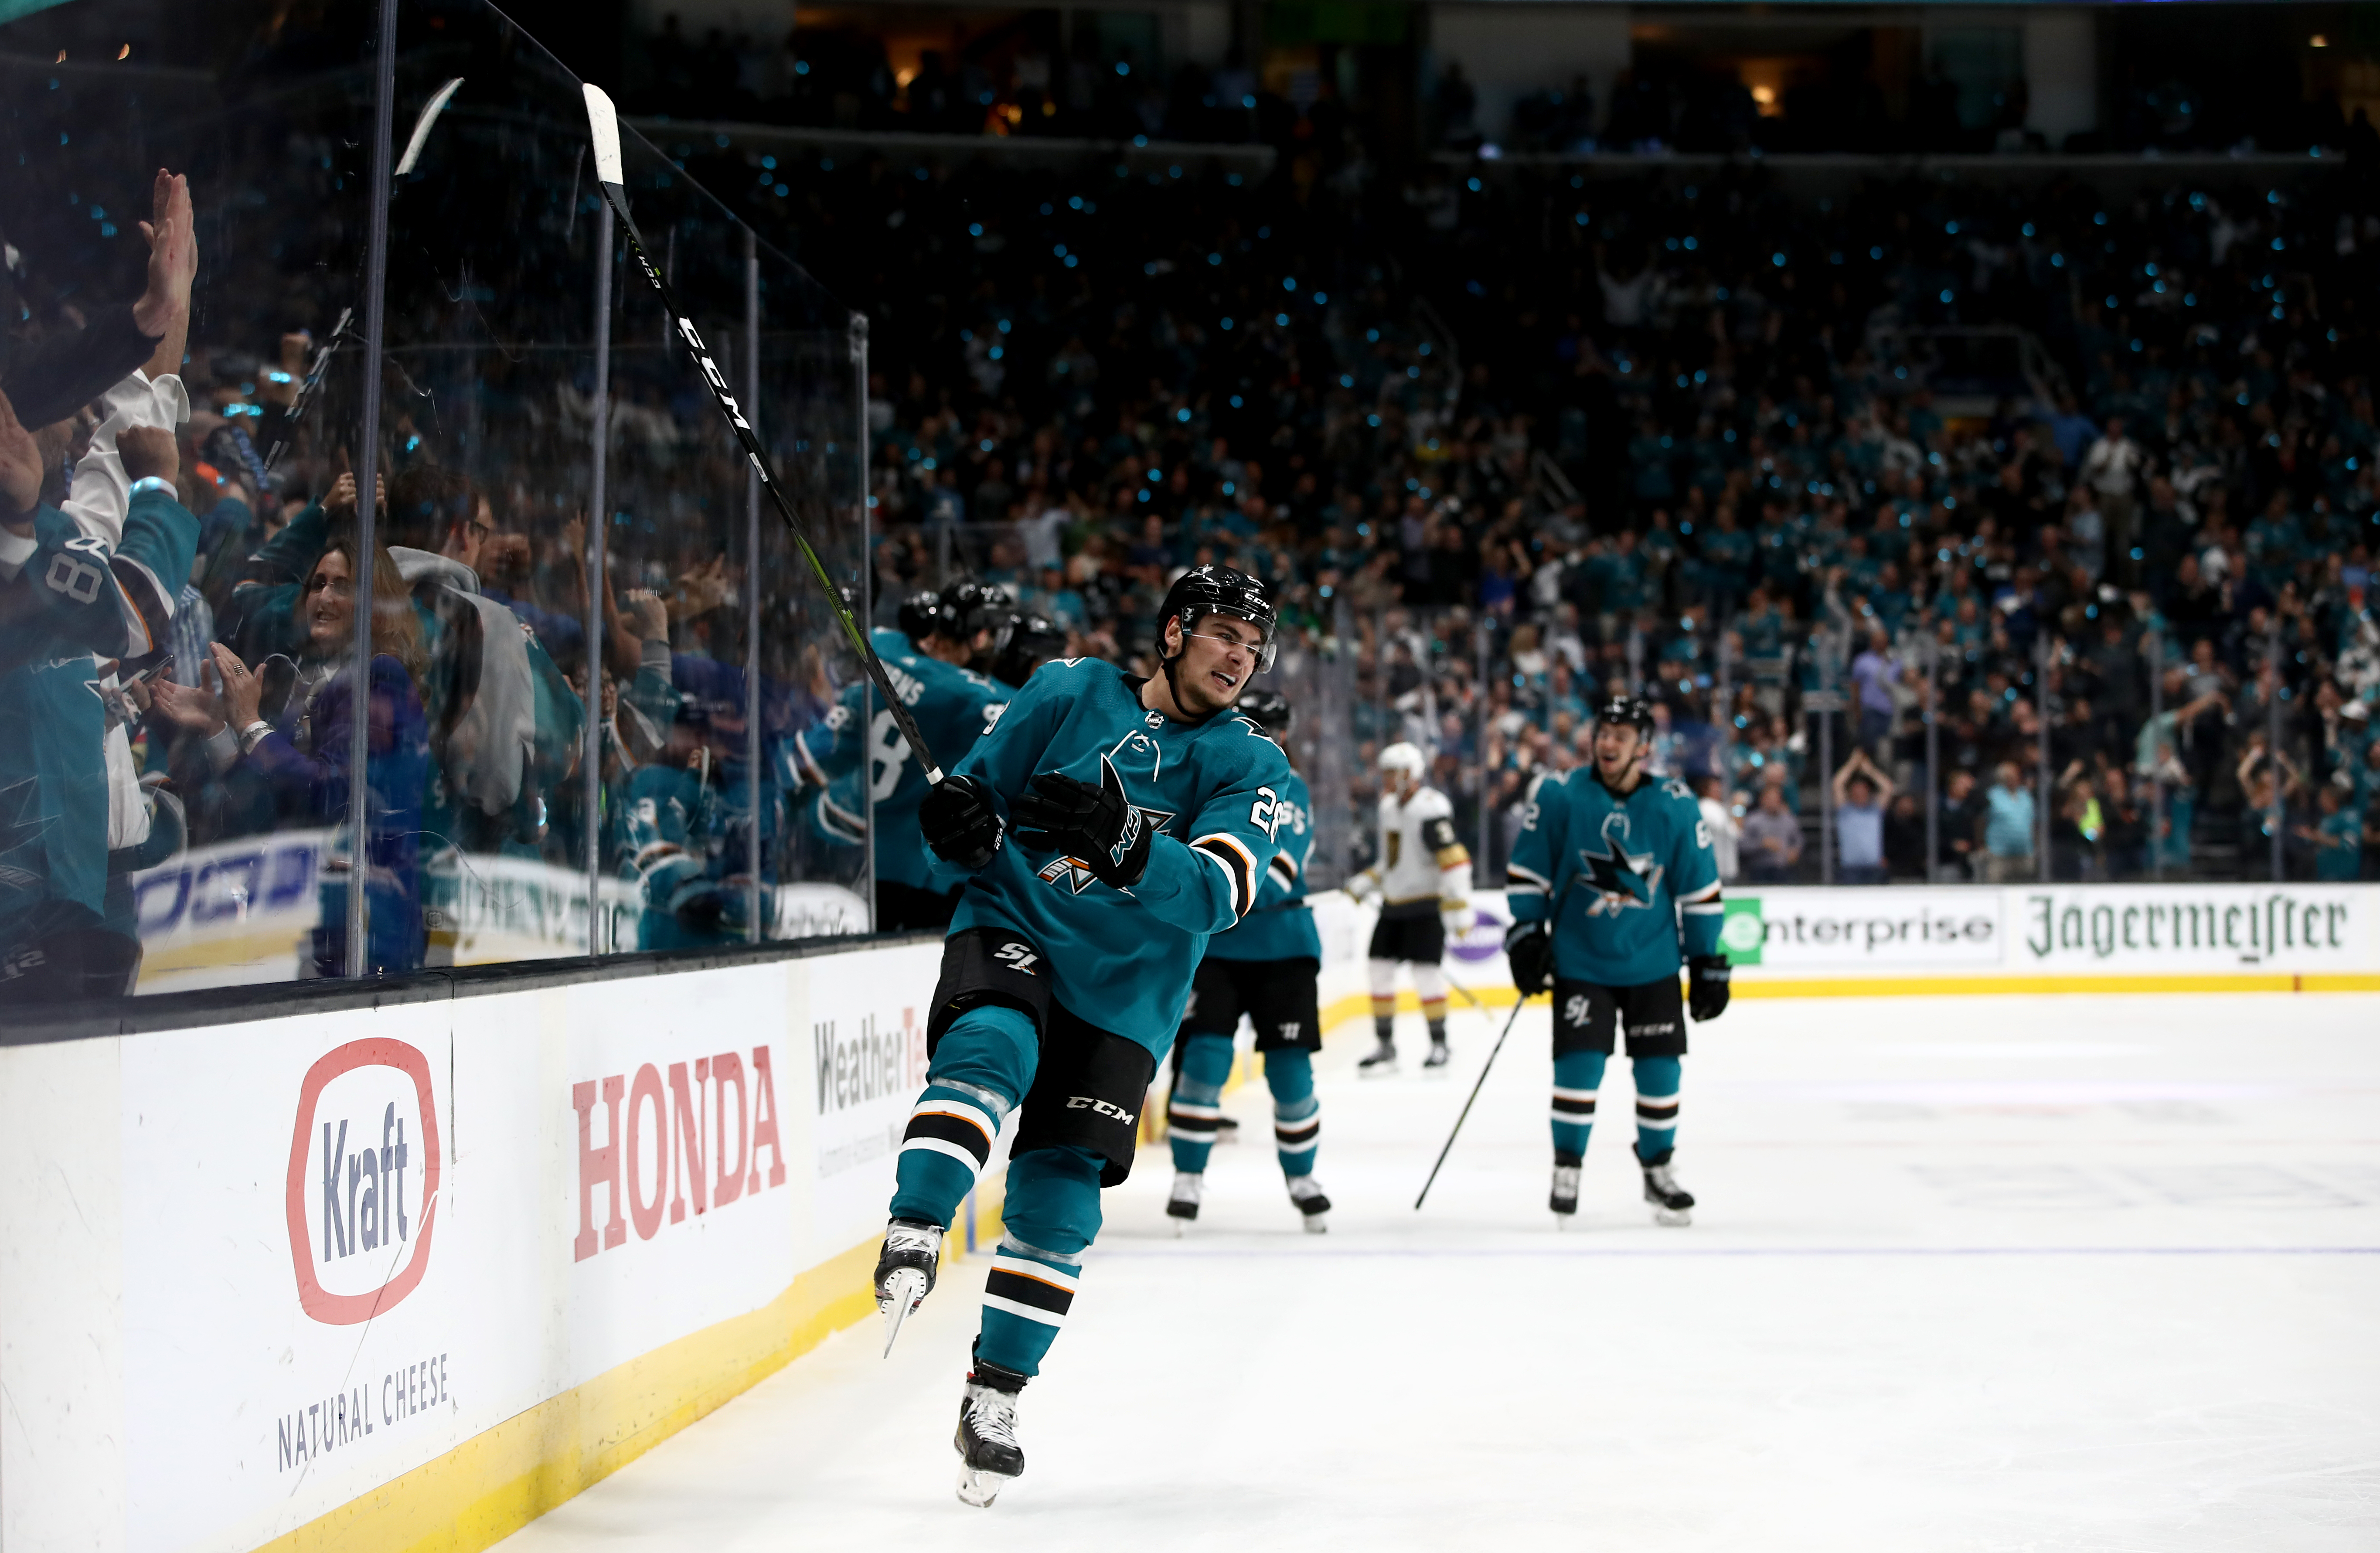 Timo Meier #28 of the San Jose Sharks reacts after the Sharks scored a go-ahead go against the Vegas Golden Knights in Game Seven of the Western Conference First Round during the 2019 NHL Stanley Cup Playoffs at SAP Center on April 23, 2019 in San Jose